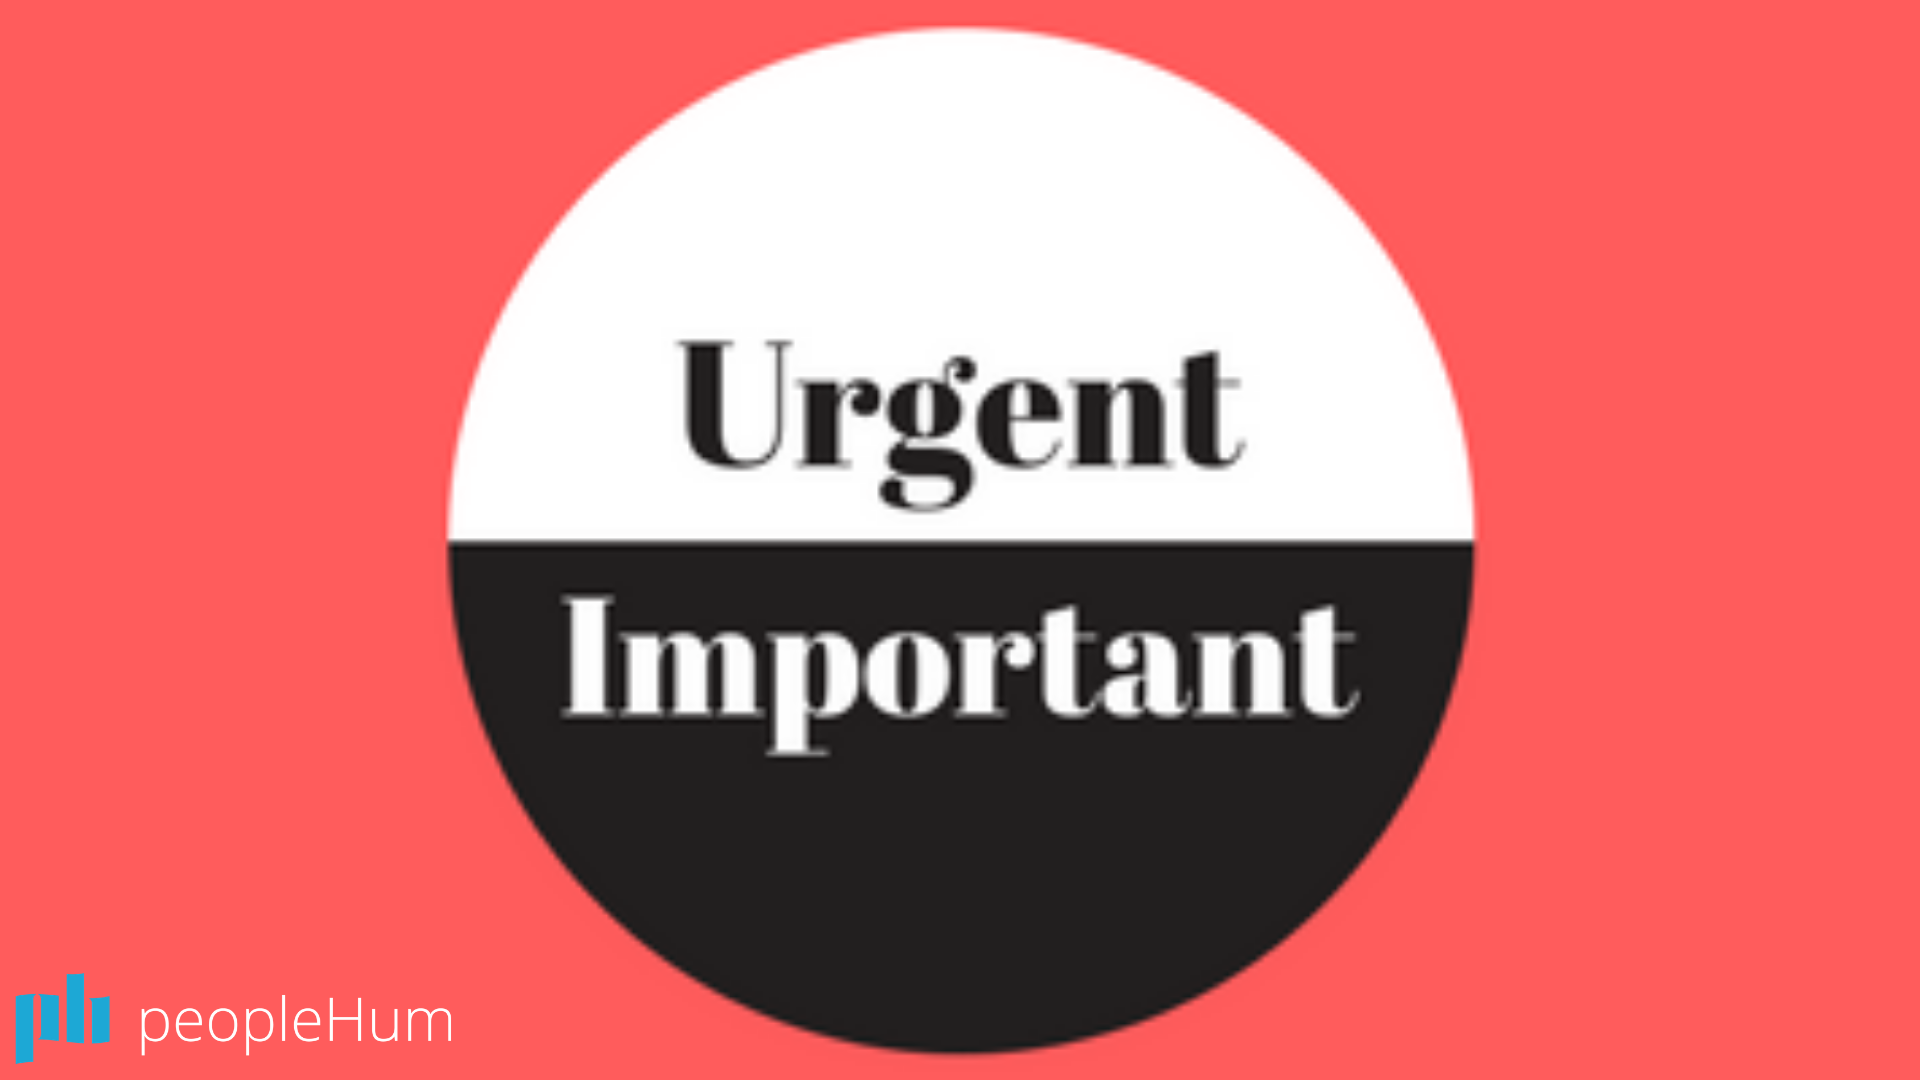 The divide between urgent and important tasks